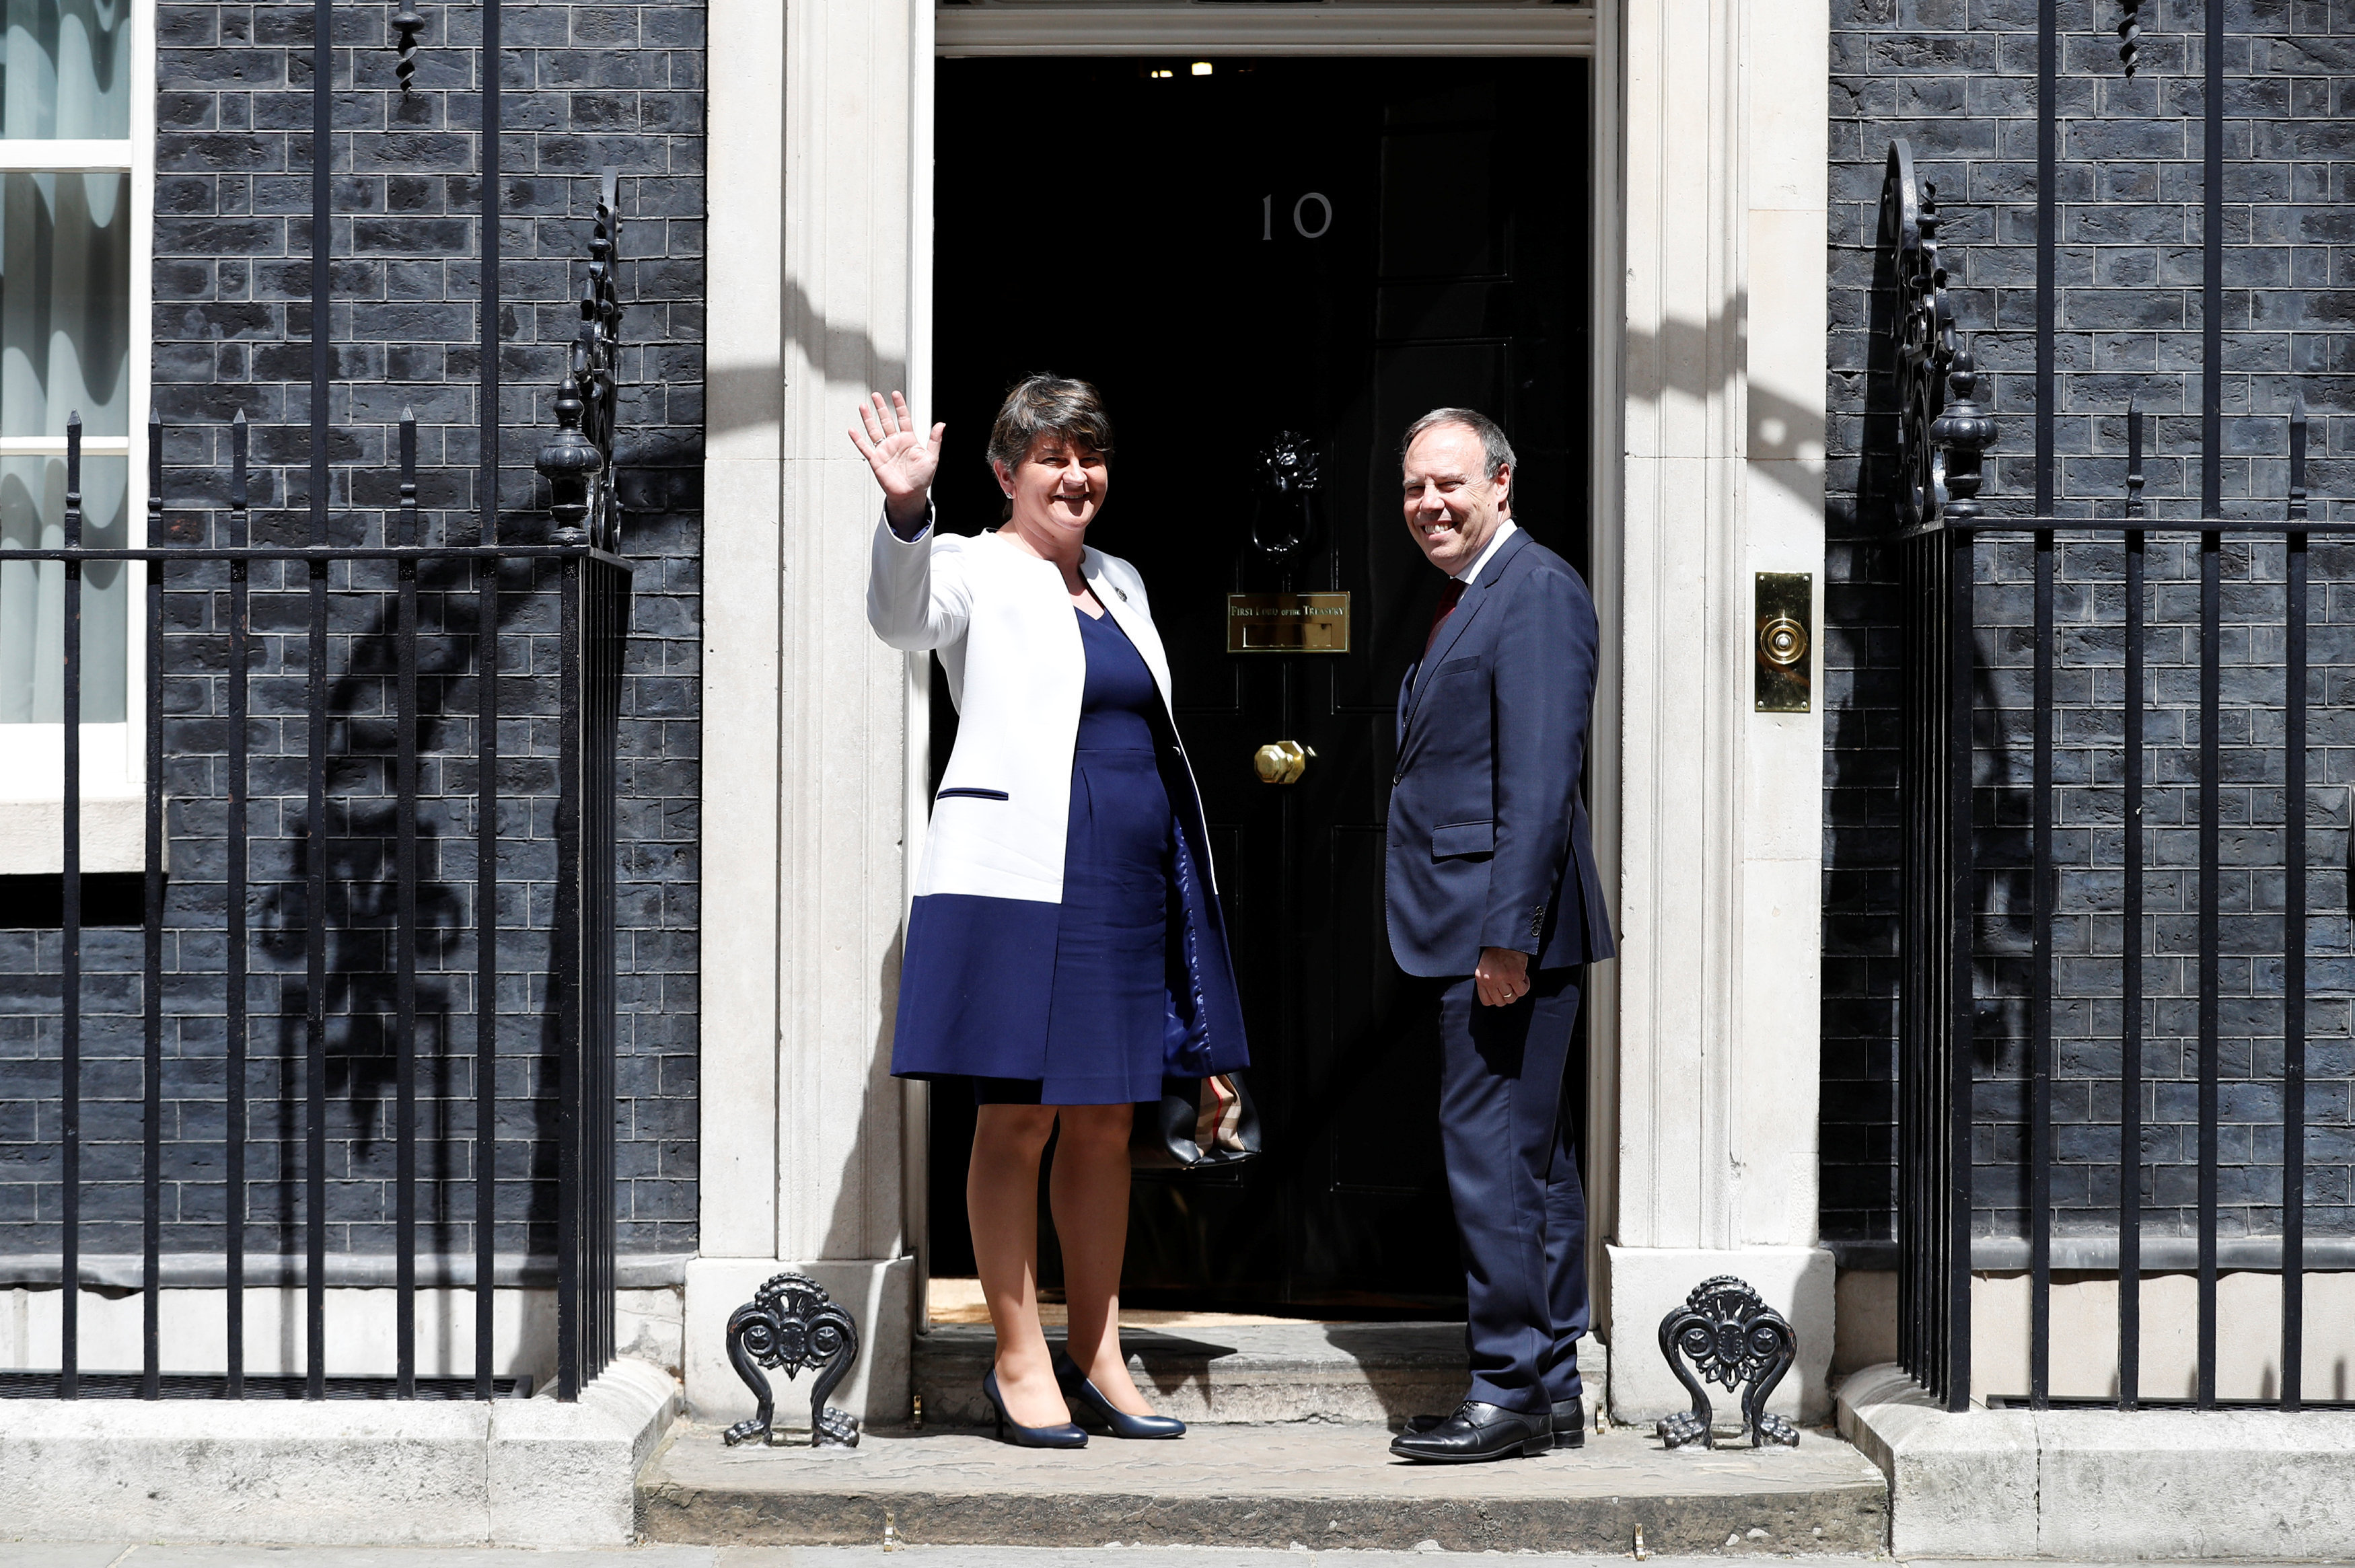 The leader of the Democratic Unionist Party (DUP), Arlene Foster, and the Deputy Leader Nigel Dodds, stand on the steps of 10 Downing Street before talks with Britain's Prime Minister Theresa May, in central London, Britain June 13, 2017